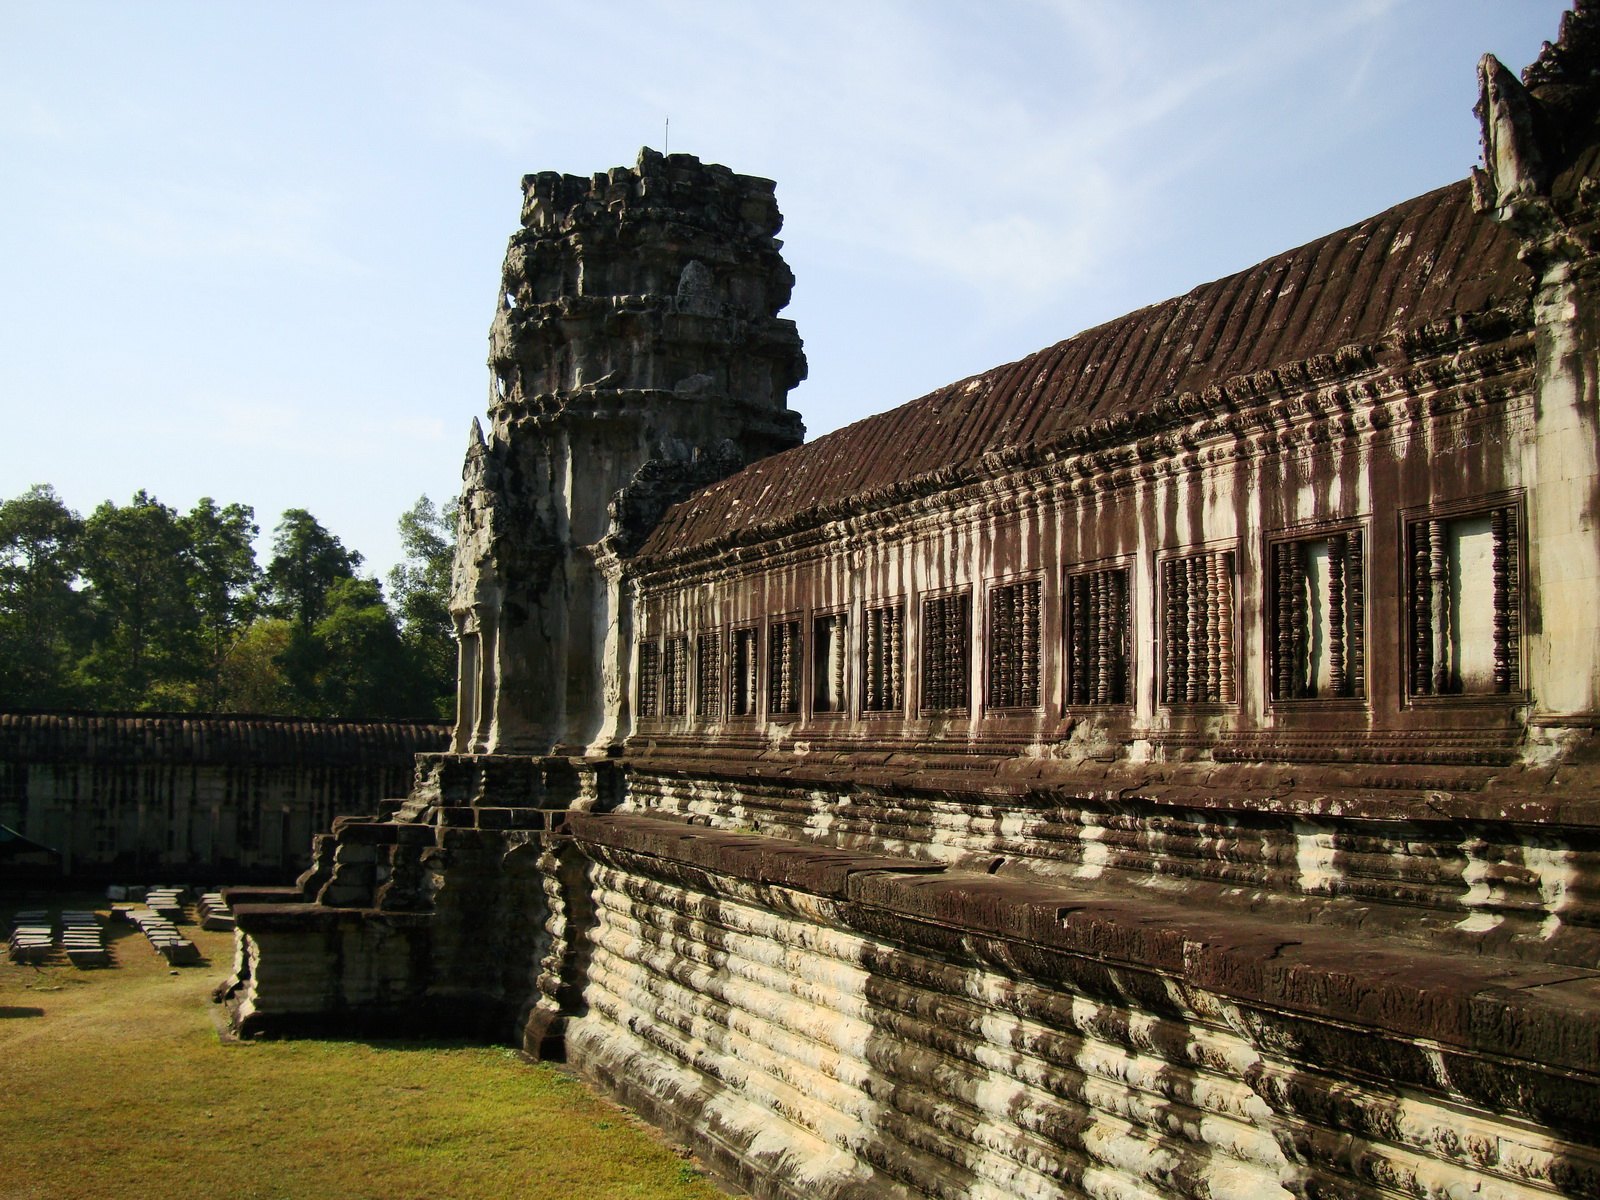 Angkor Wat Khmer architecture internal gallery E entrance 13